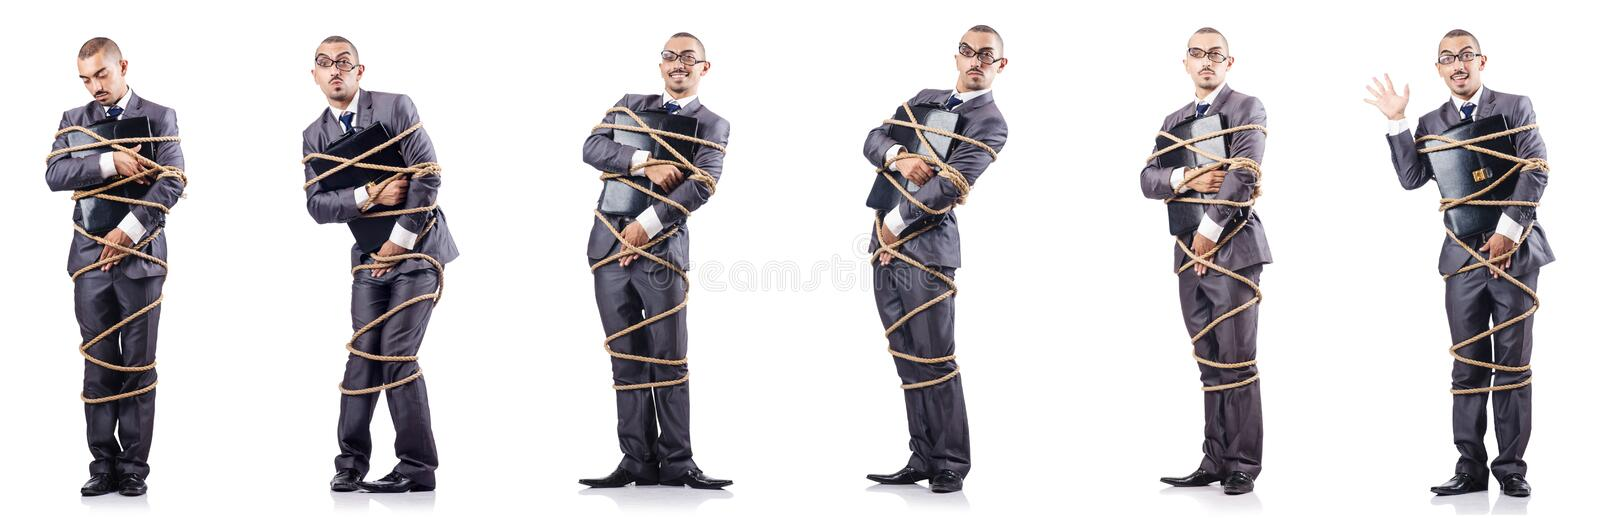 The man tied up isolated on white. Man tied up isolated on white royalty free stock photo